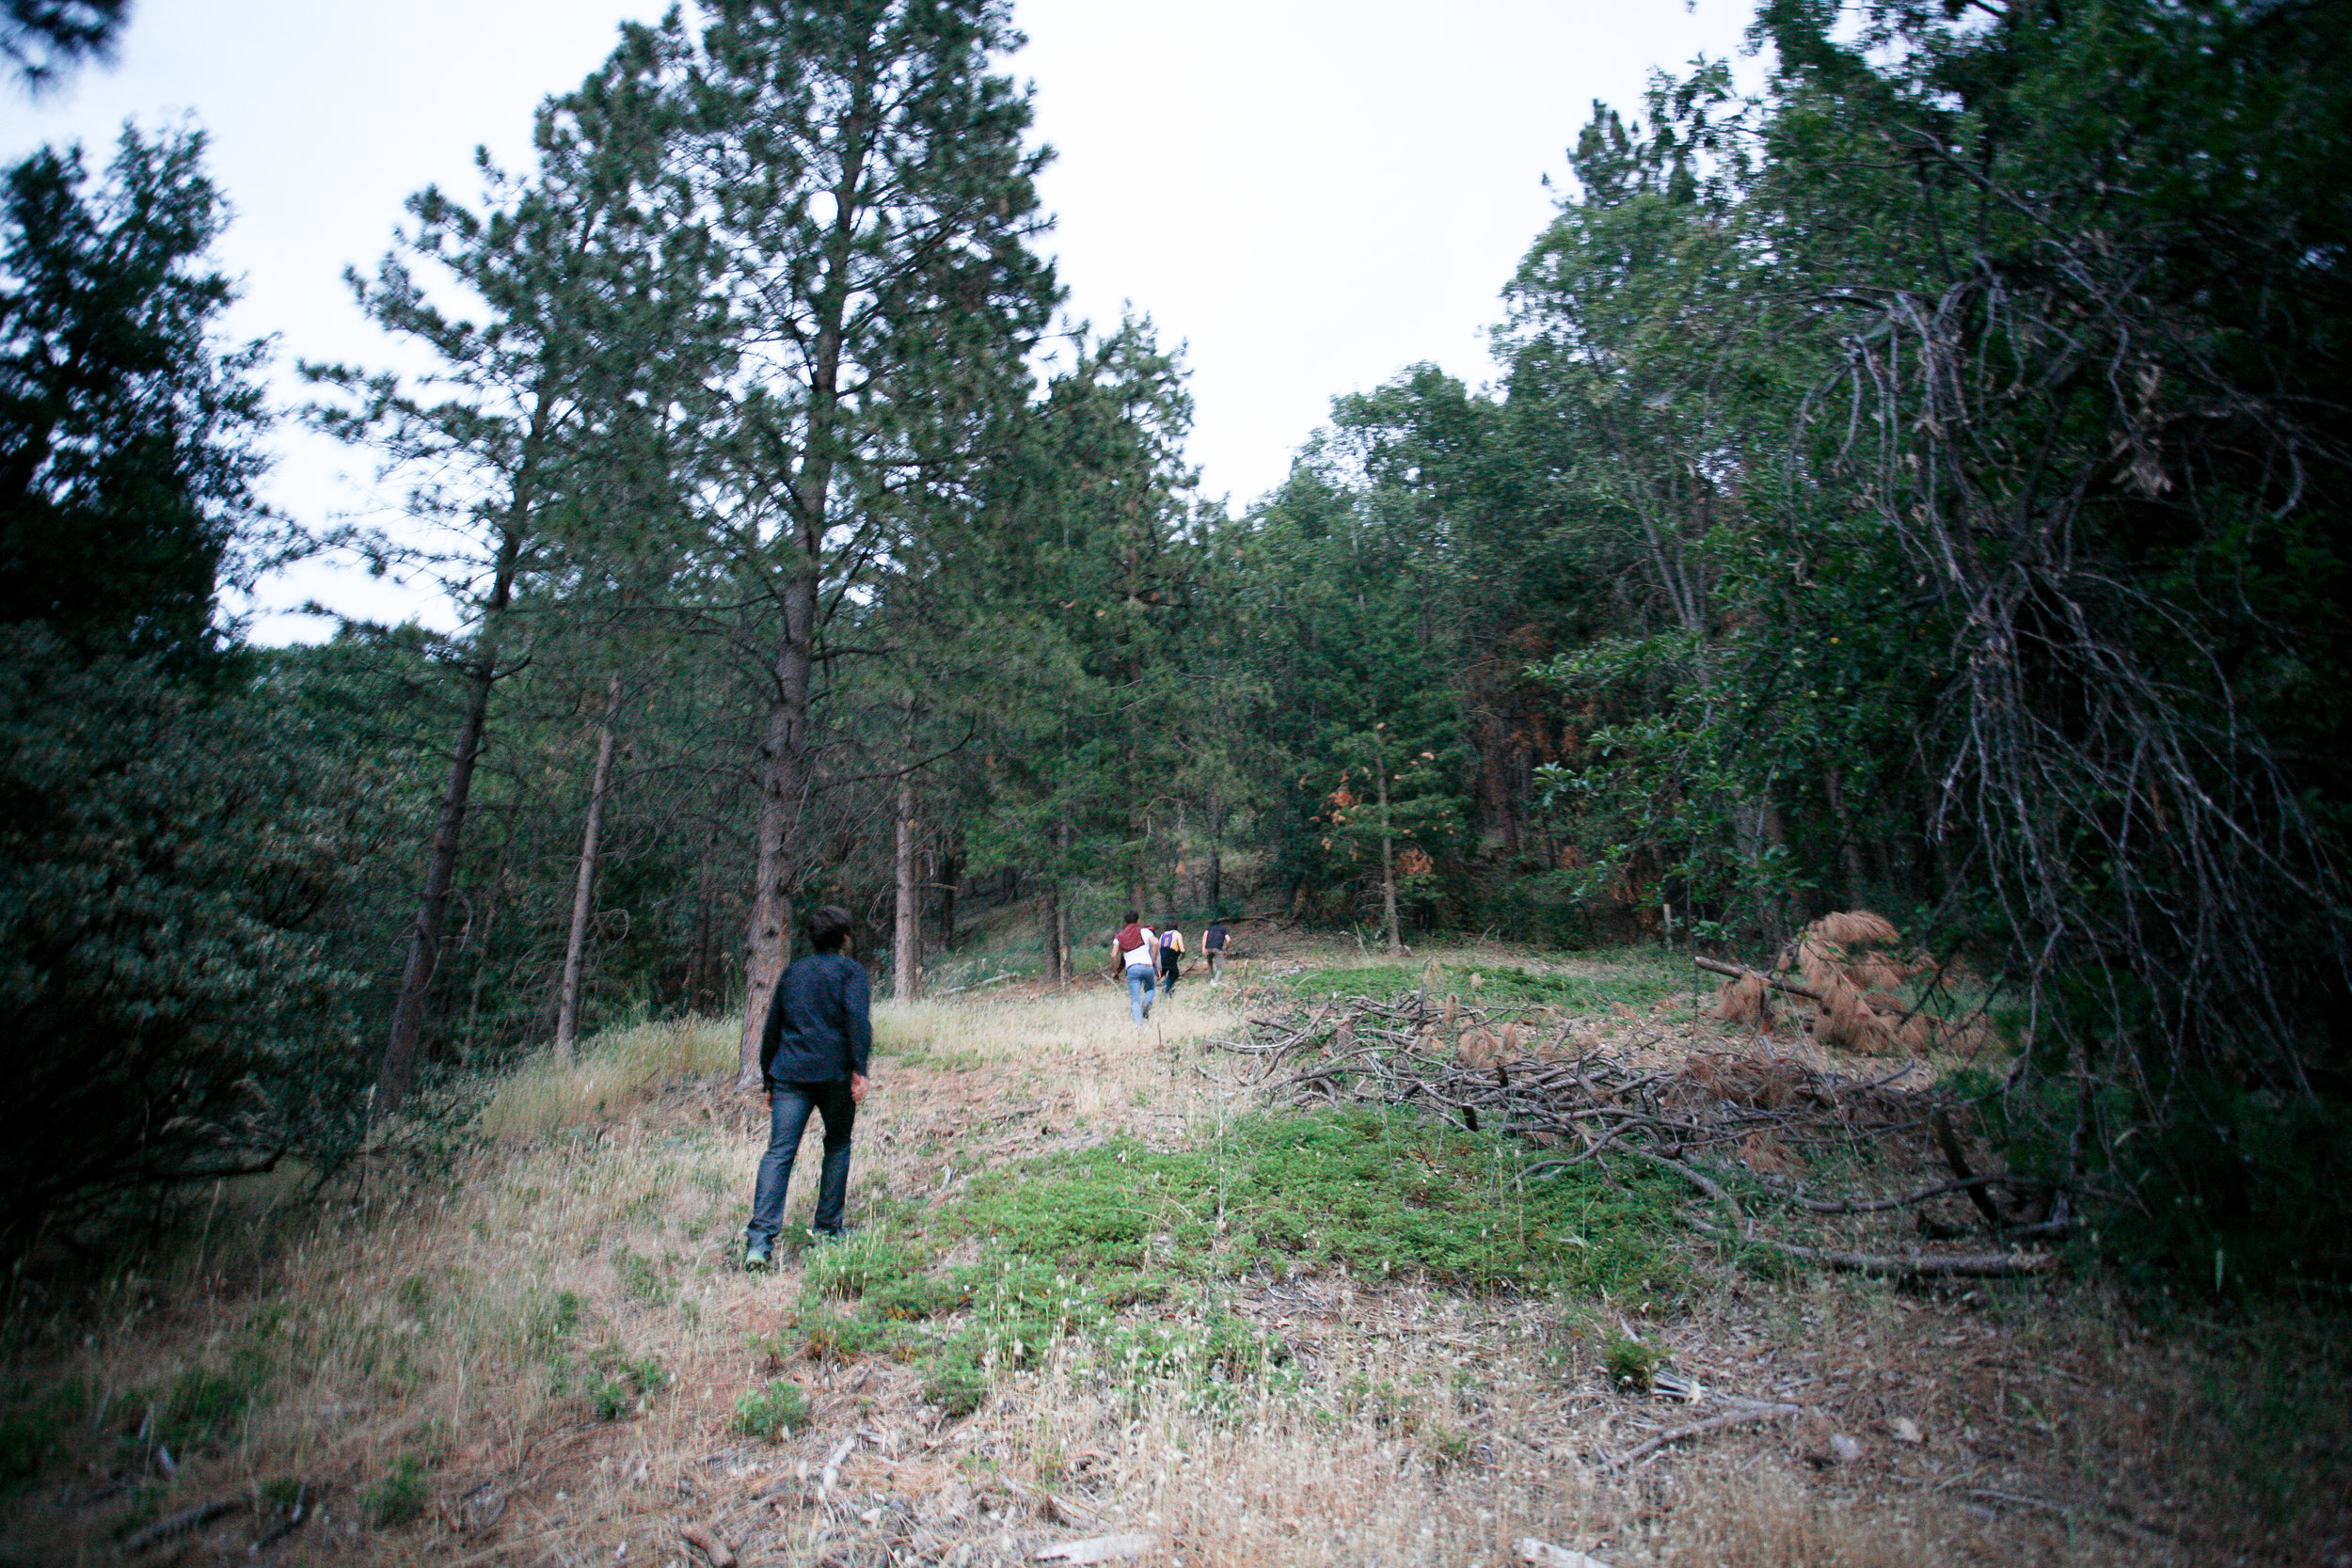 The conifers in the Kings National Park and surrounding area are dying at unprecedented rates due to a lack of water, trees are unable to produce enough sap to ward off parasites.